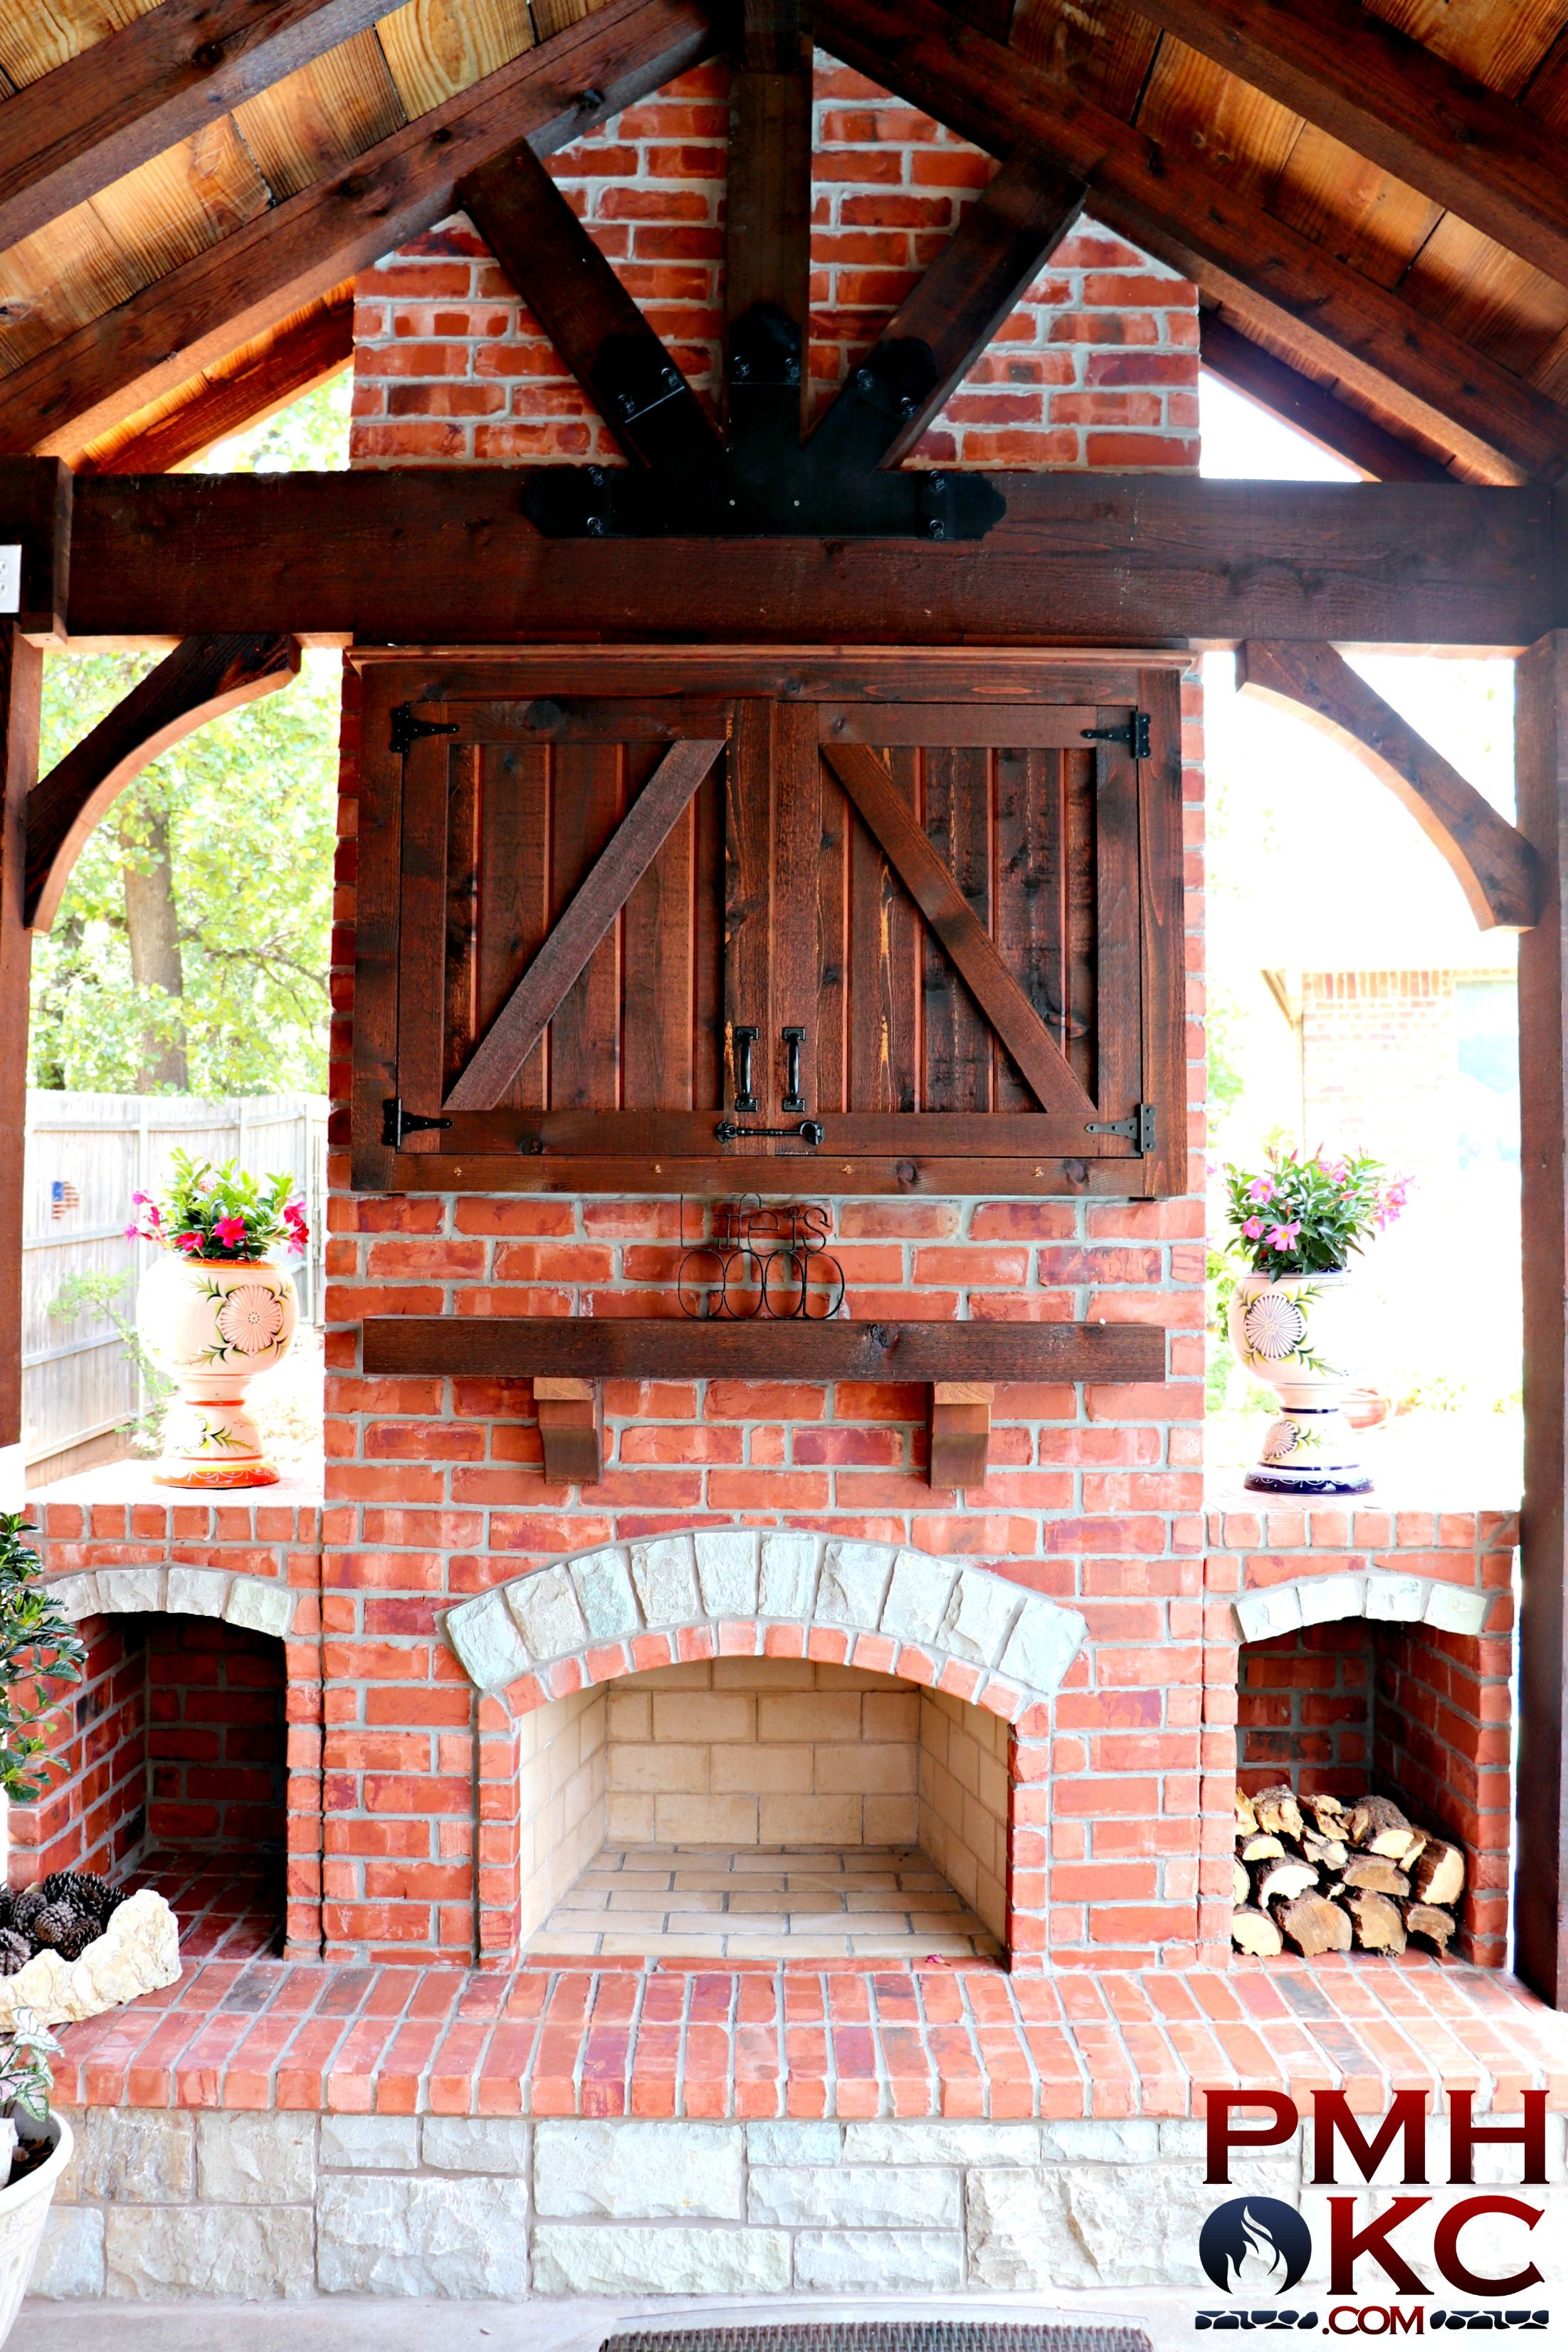 custom fireplace with tv box with images custom fireplace outdoor pergola fireplace on outdoor kitchen tv id=38465